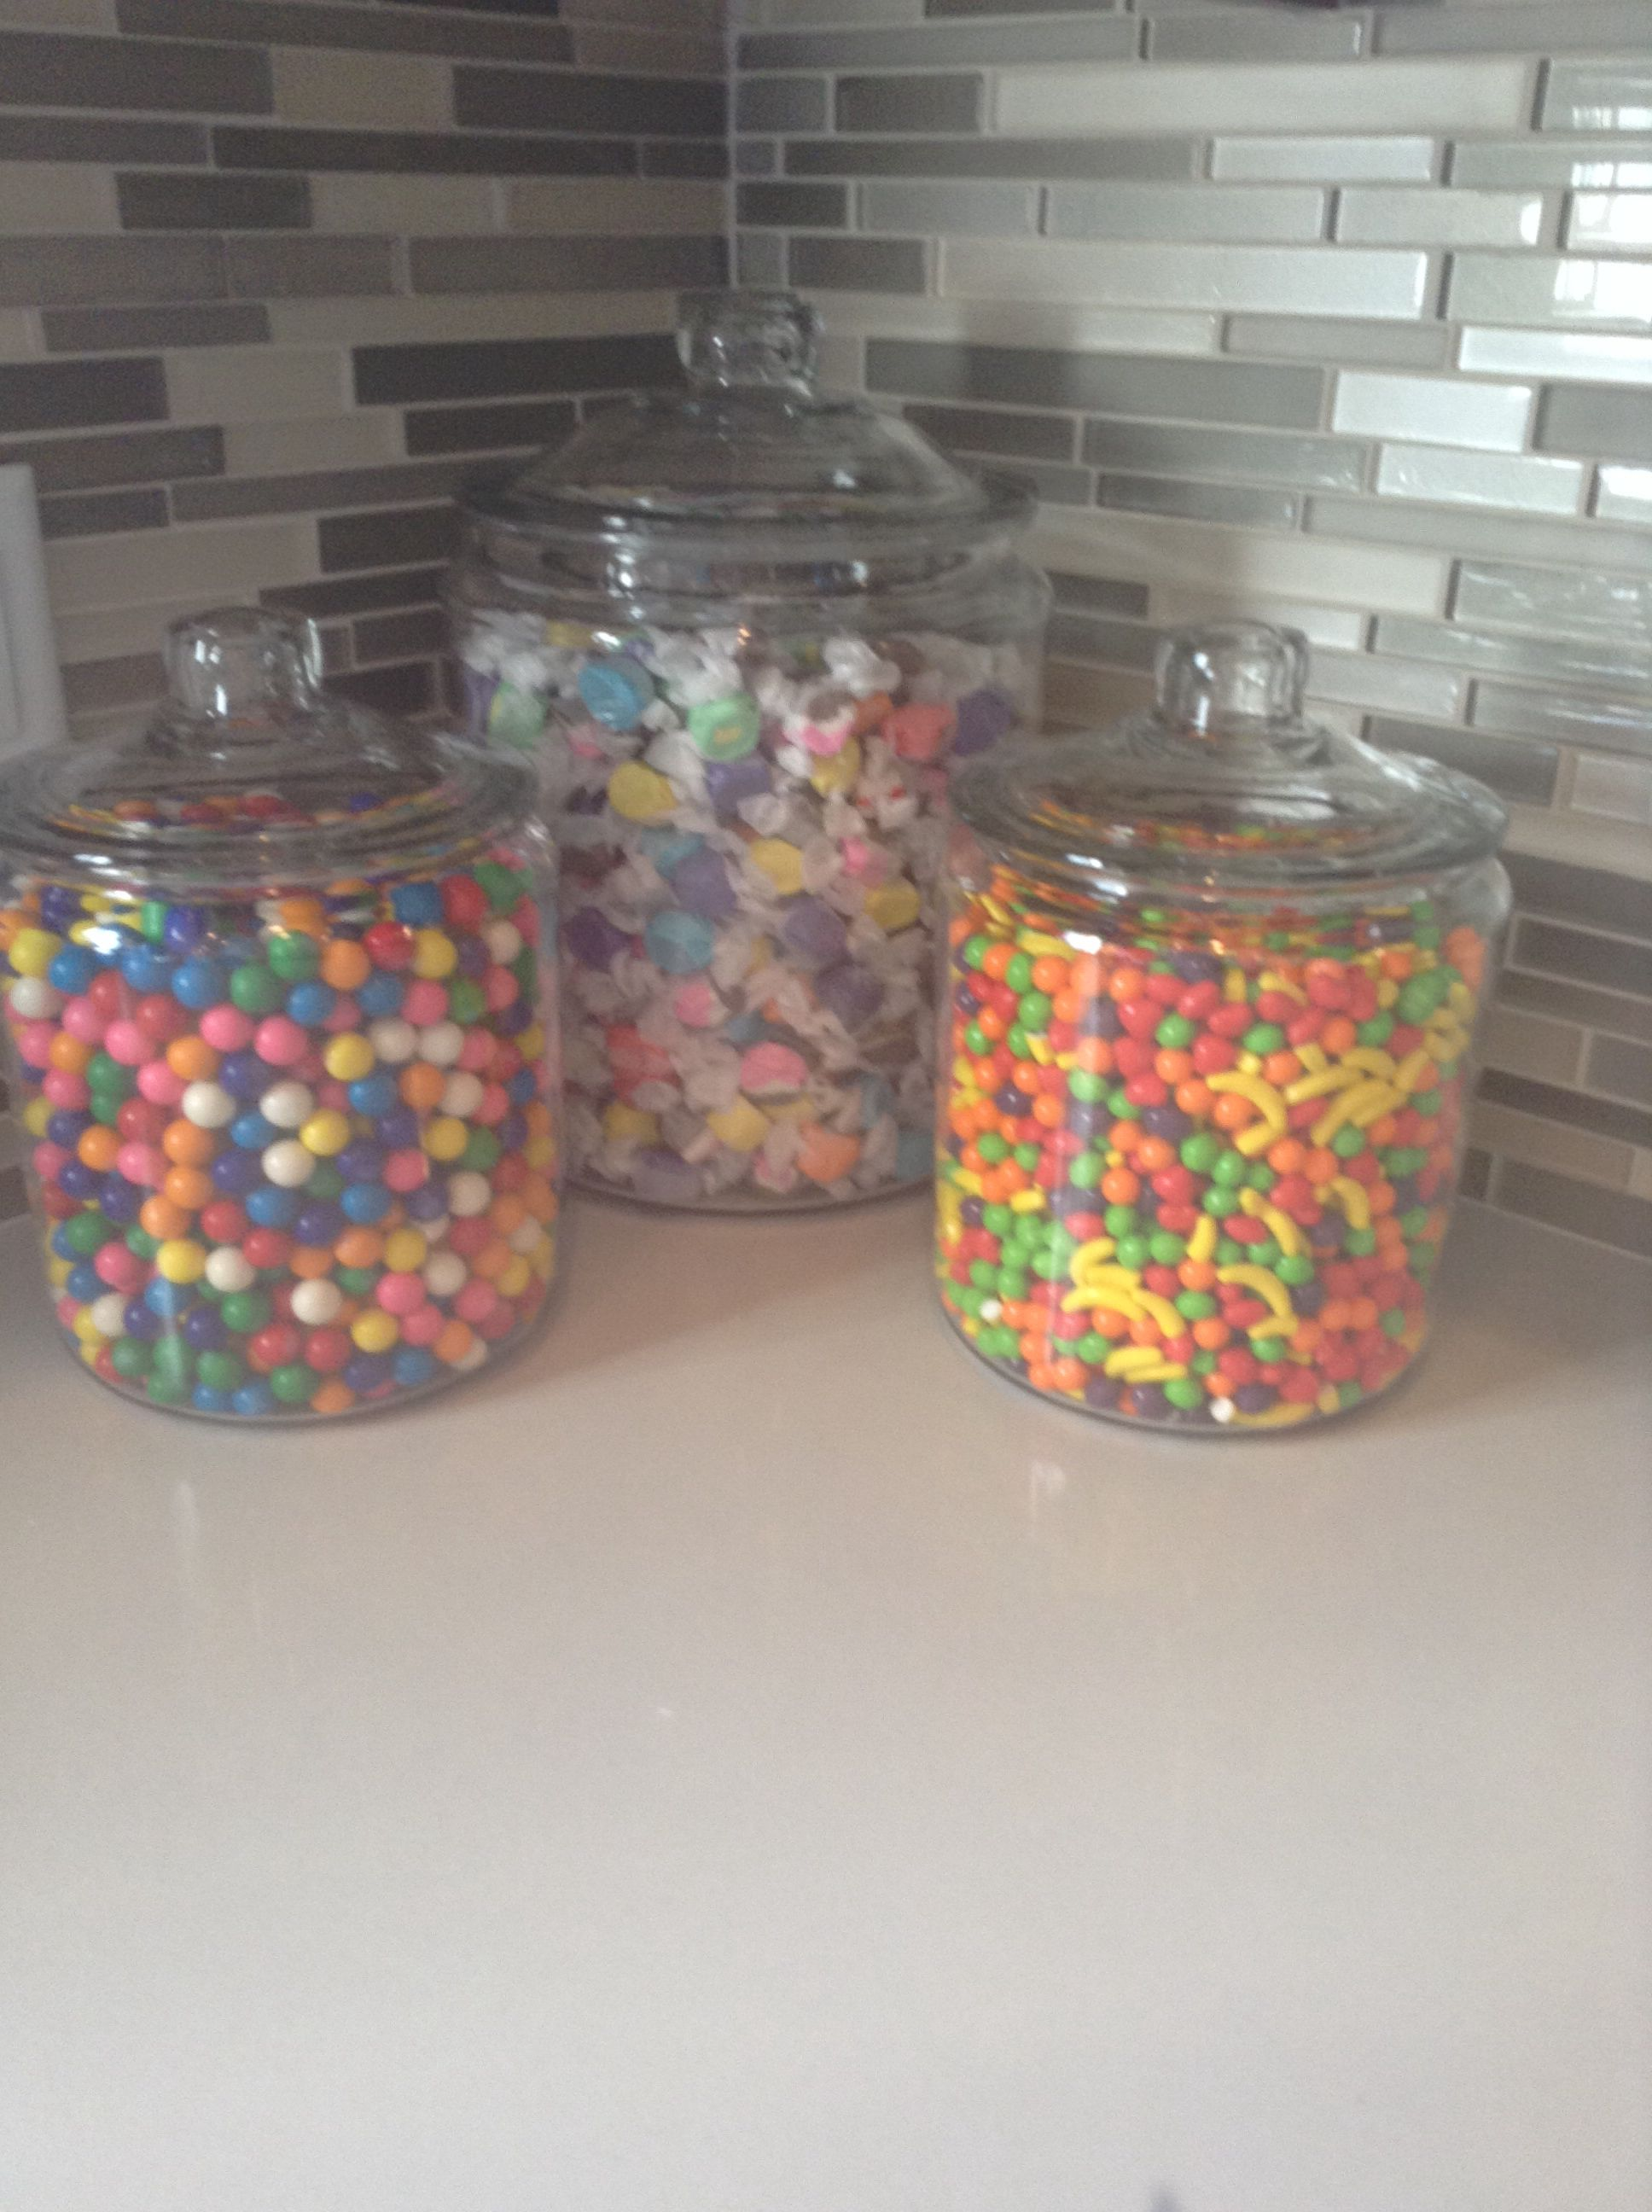 Candy Jars On The Counter Kitchen Jars Decor Kitchen Counter